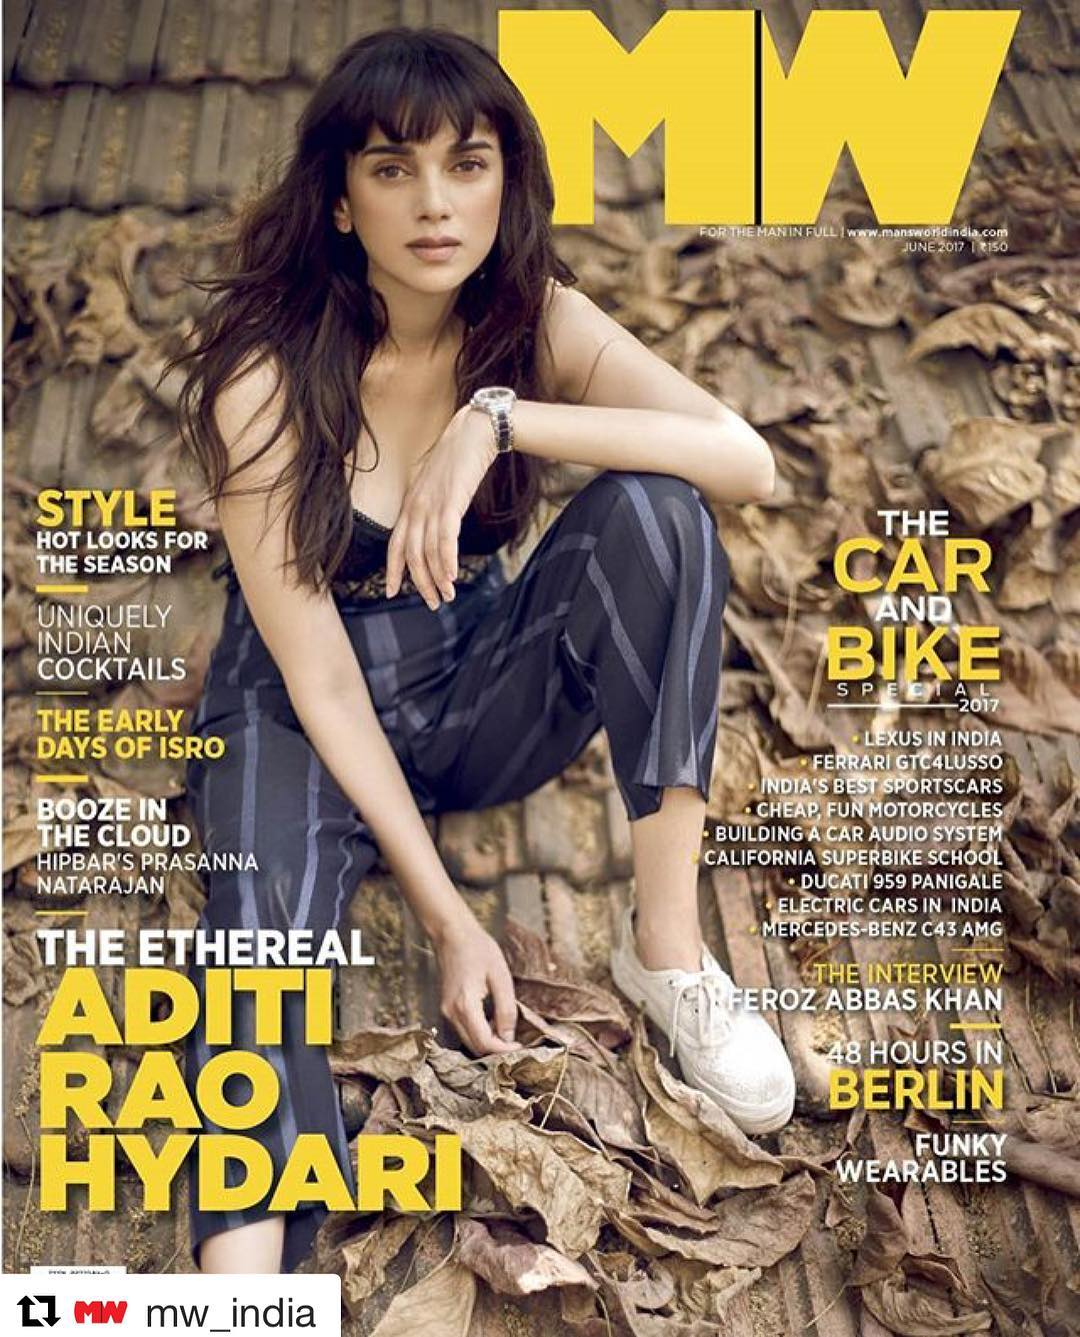 Aditi Rao Hydari On The Cover of Mans World Magazine June 2017